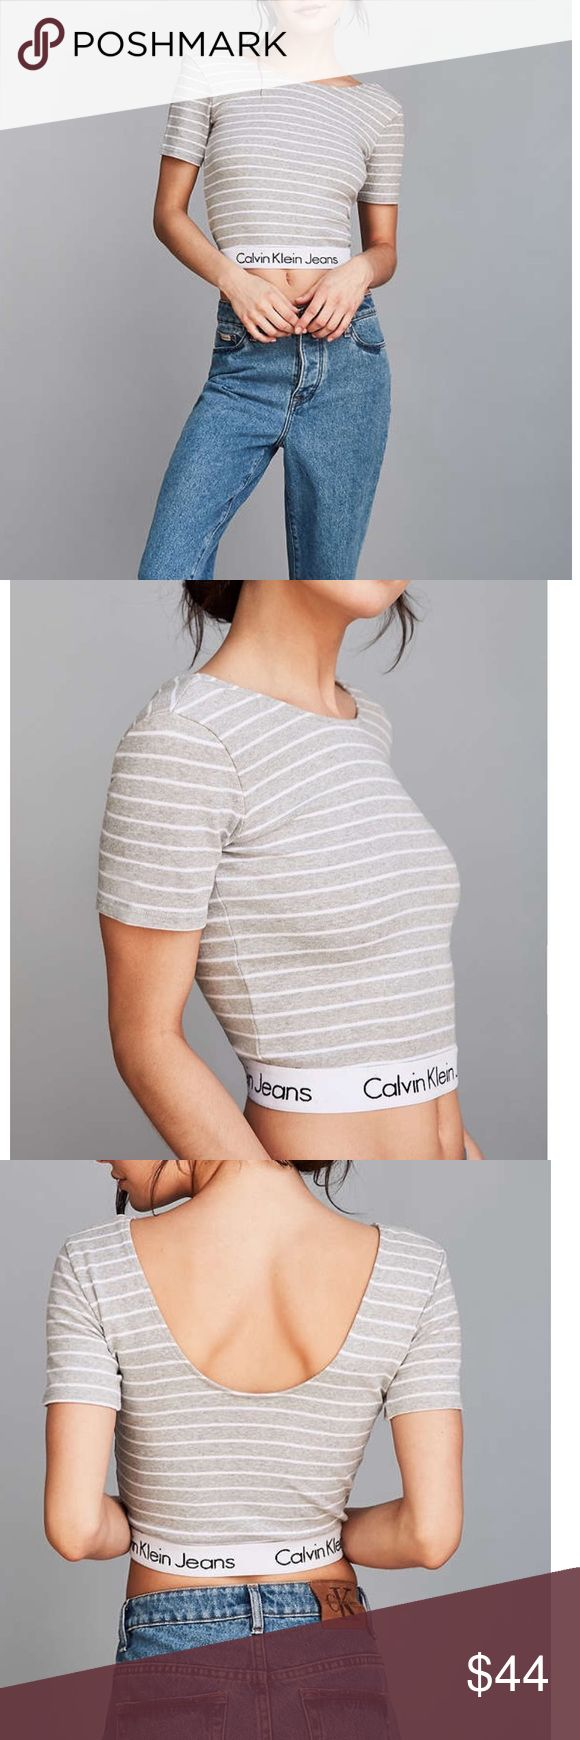 Calvin Klein For UO Stripe Cropped Tee Calvin Klein For UO Stripe Cropped Tee. Slim & stretchy crop fit, trimmed with brands iconic stretch logo band, scoop neck in back, urban outfitters exclusive Urban Outfitters Tops Crop Tops